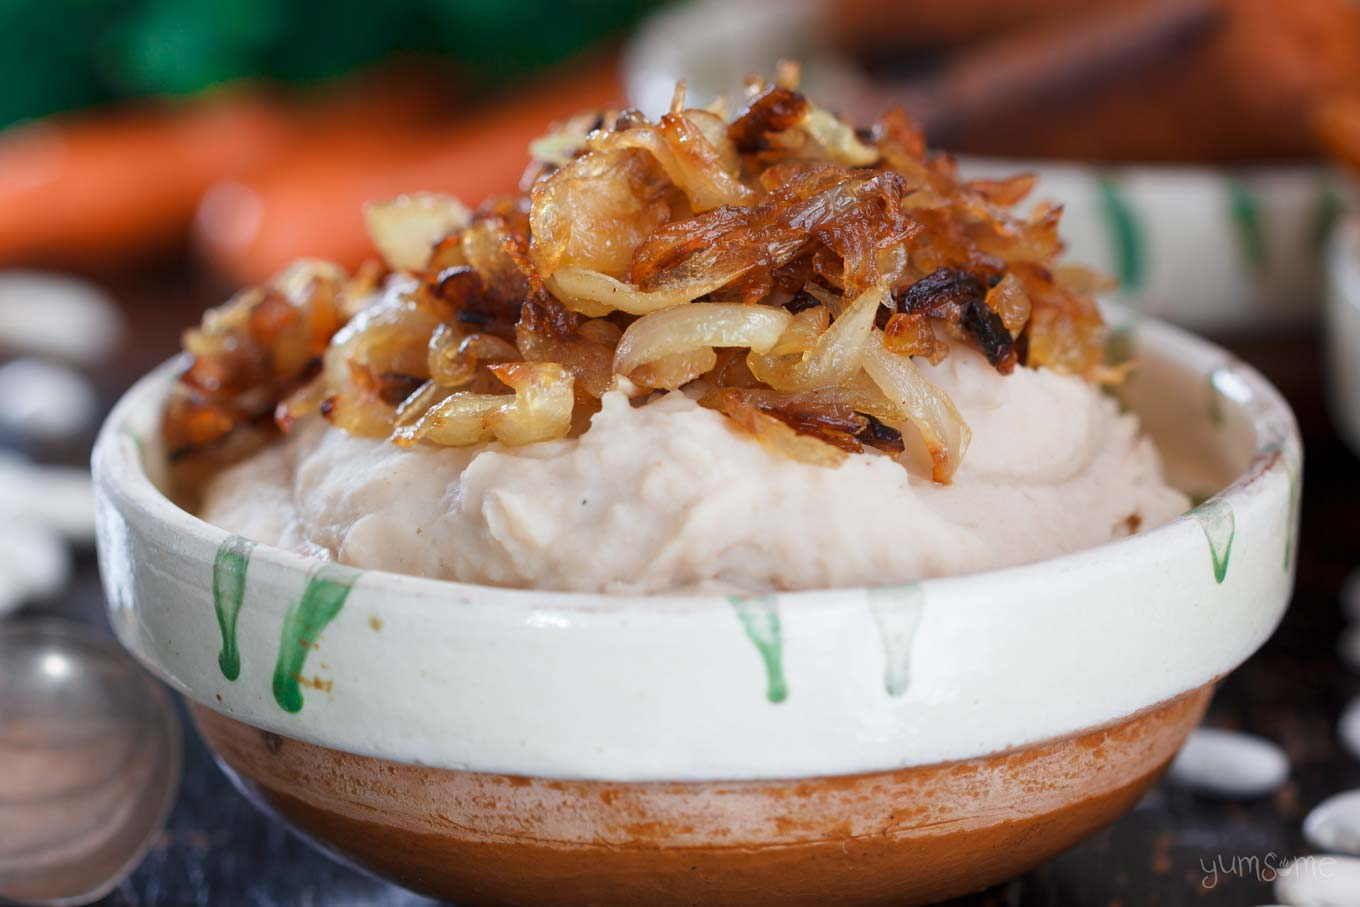 An earthenware bowl of fasole bătută, topped with caramelised onions.